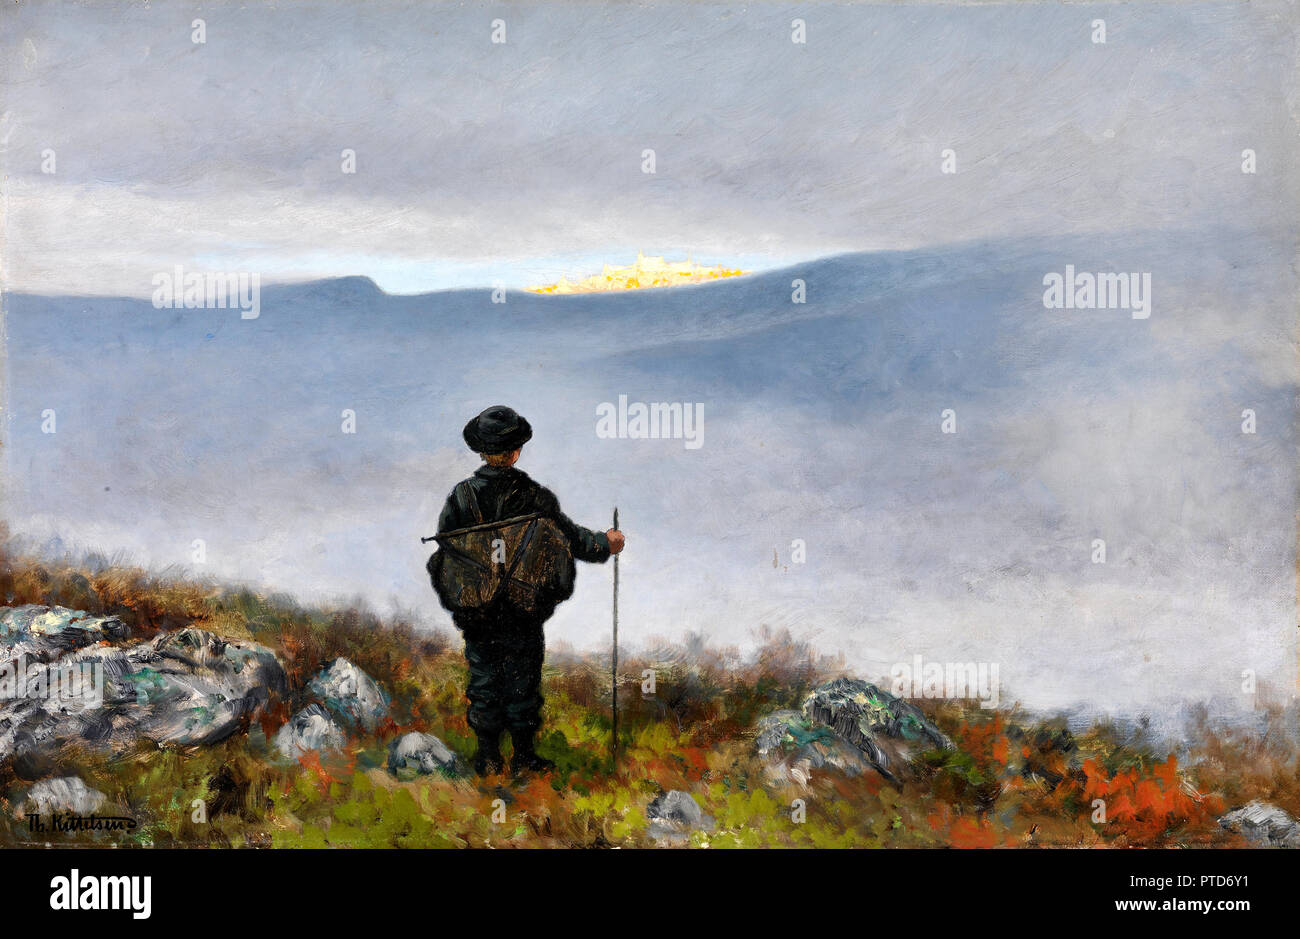 Theodor Kittelsen, Far, Far Away Soria Moria Palace Shimmered Like Gold, 1900 Oil on canvas, National Gallery of Norway, Oslo, Norway. - Stock Image